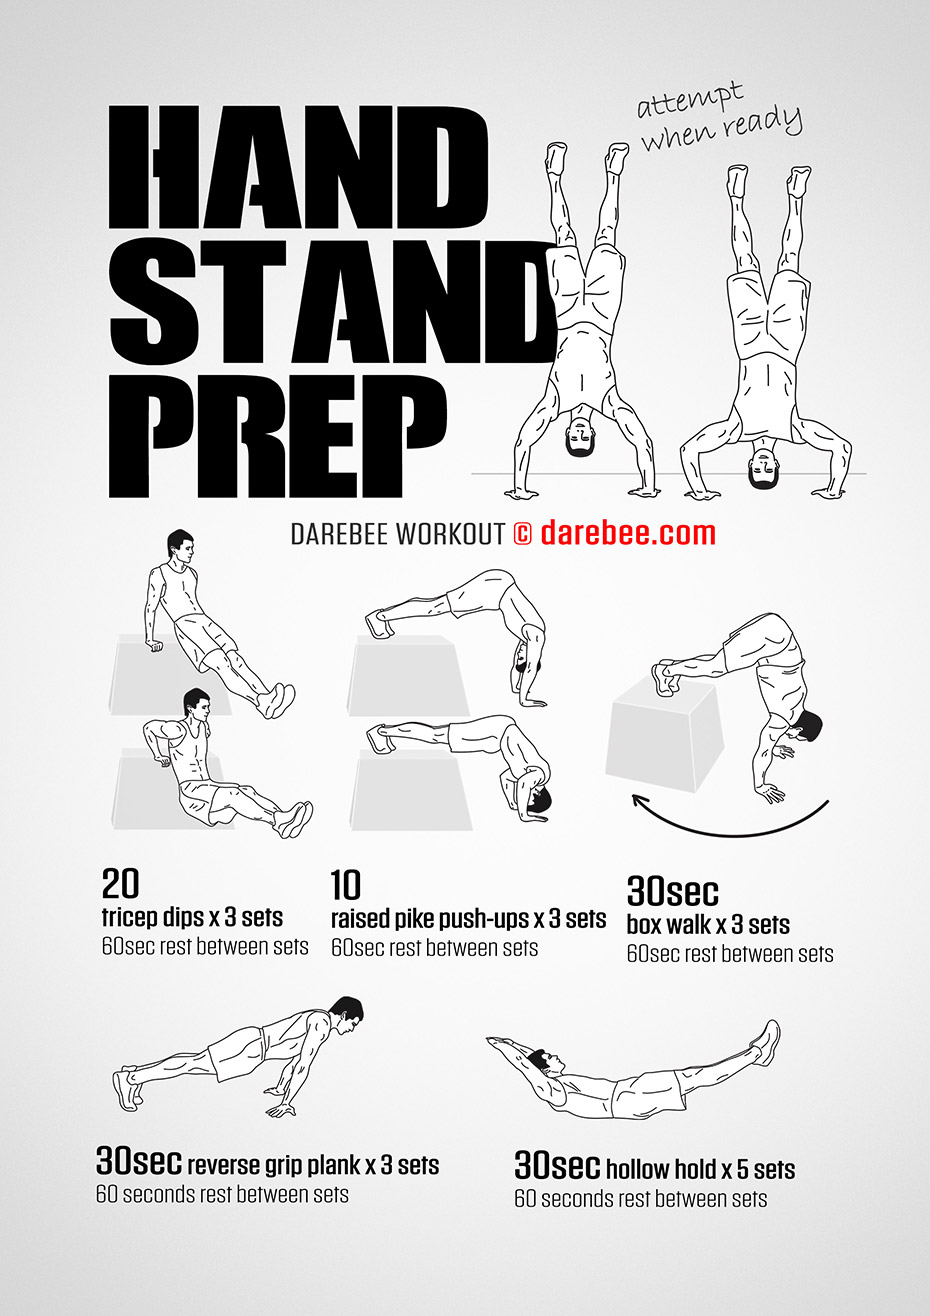 Handstand Prep Workout